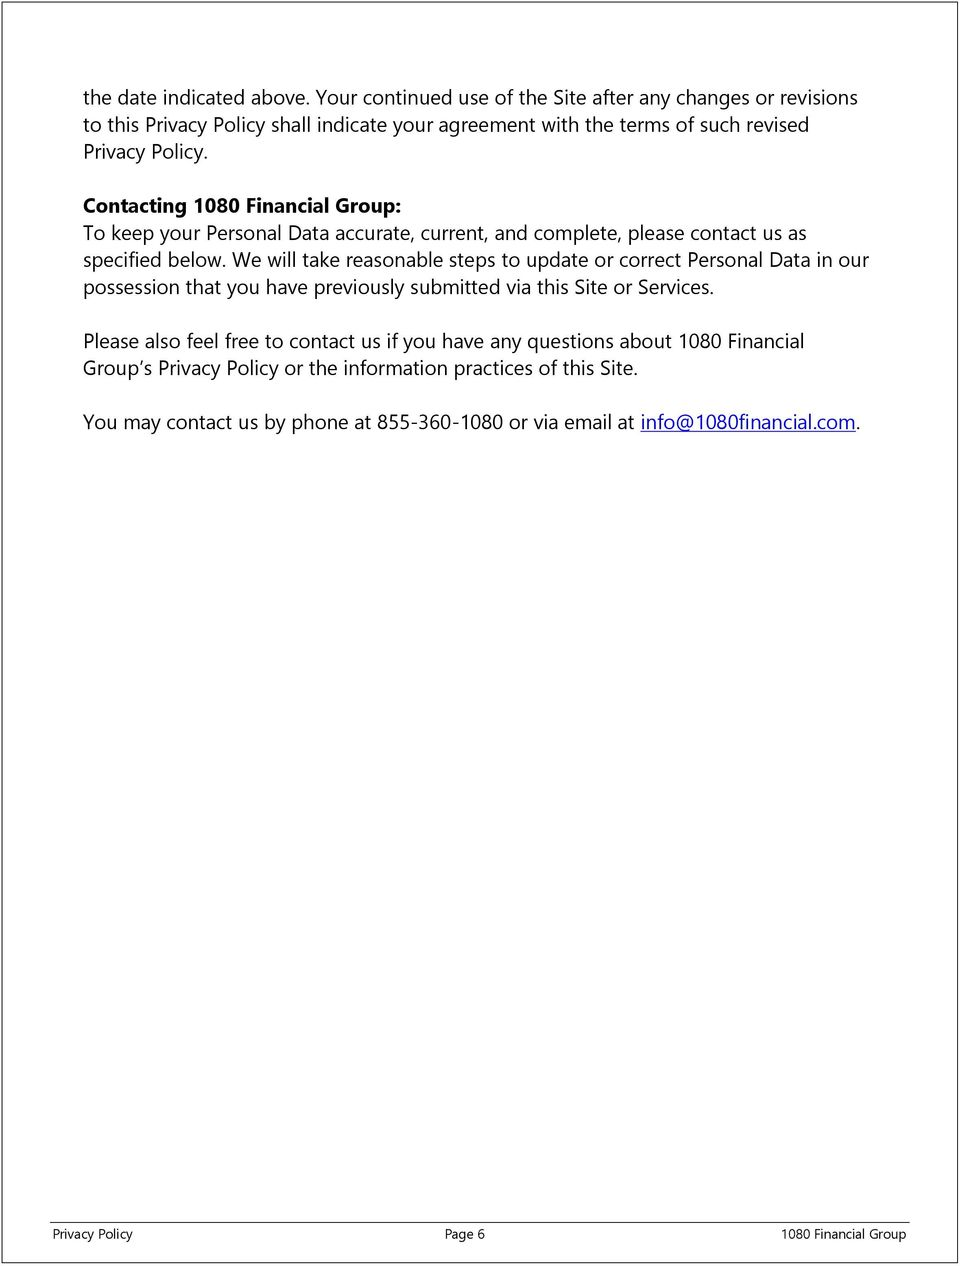 Contacting 1080 Financial Group: To keep your Personal Data accurate, current, and complete, please contact us as specified below.